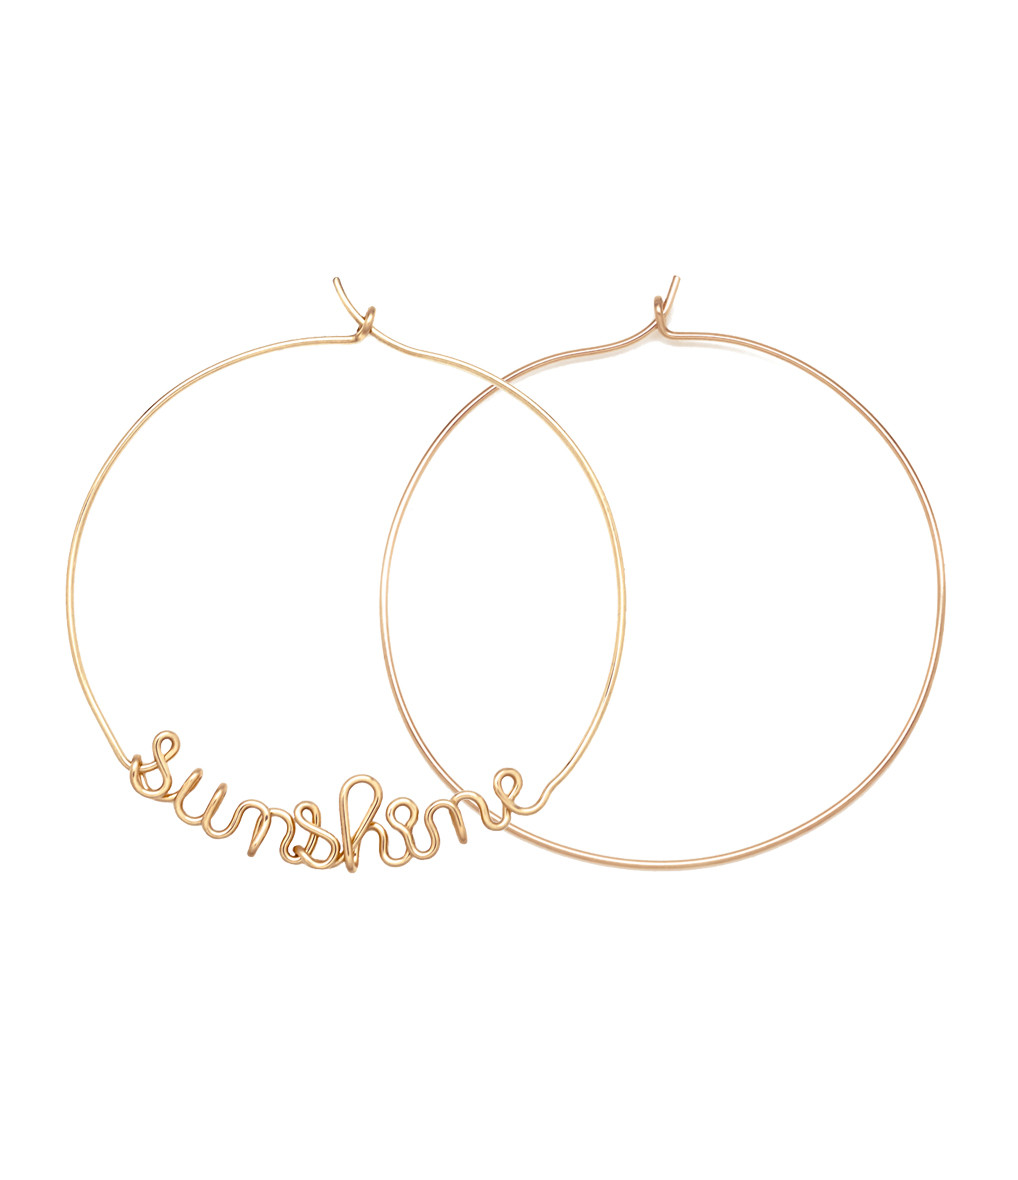 ATELIER PAULIN - Créoles Sunshine Gold Filled 14K